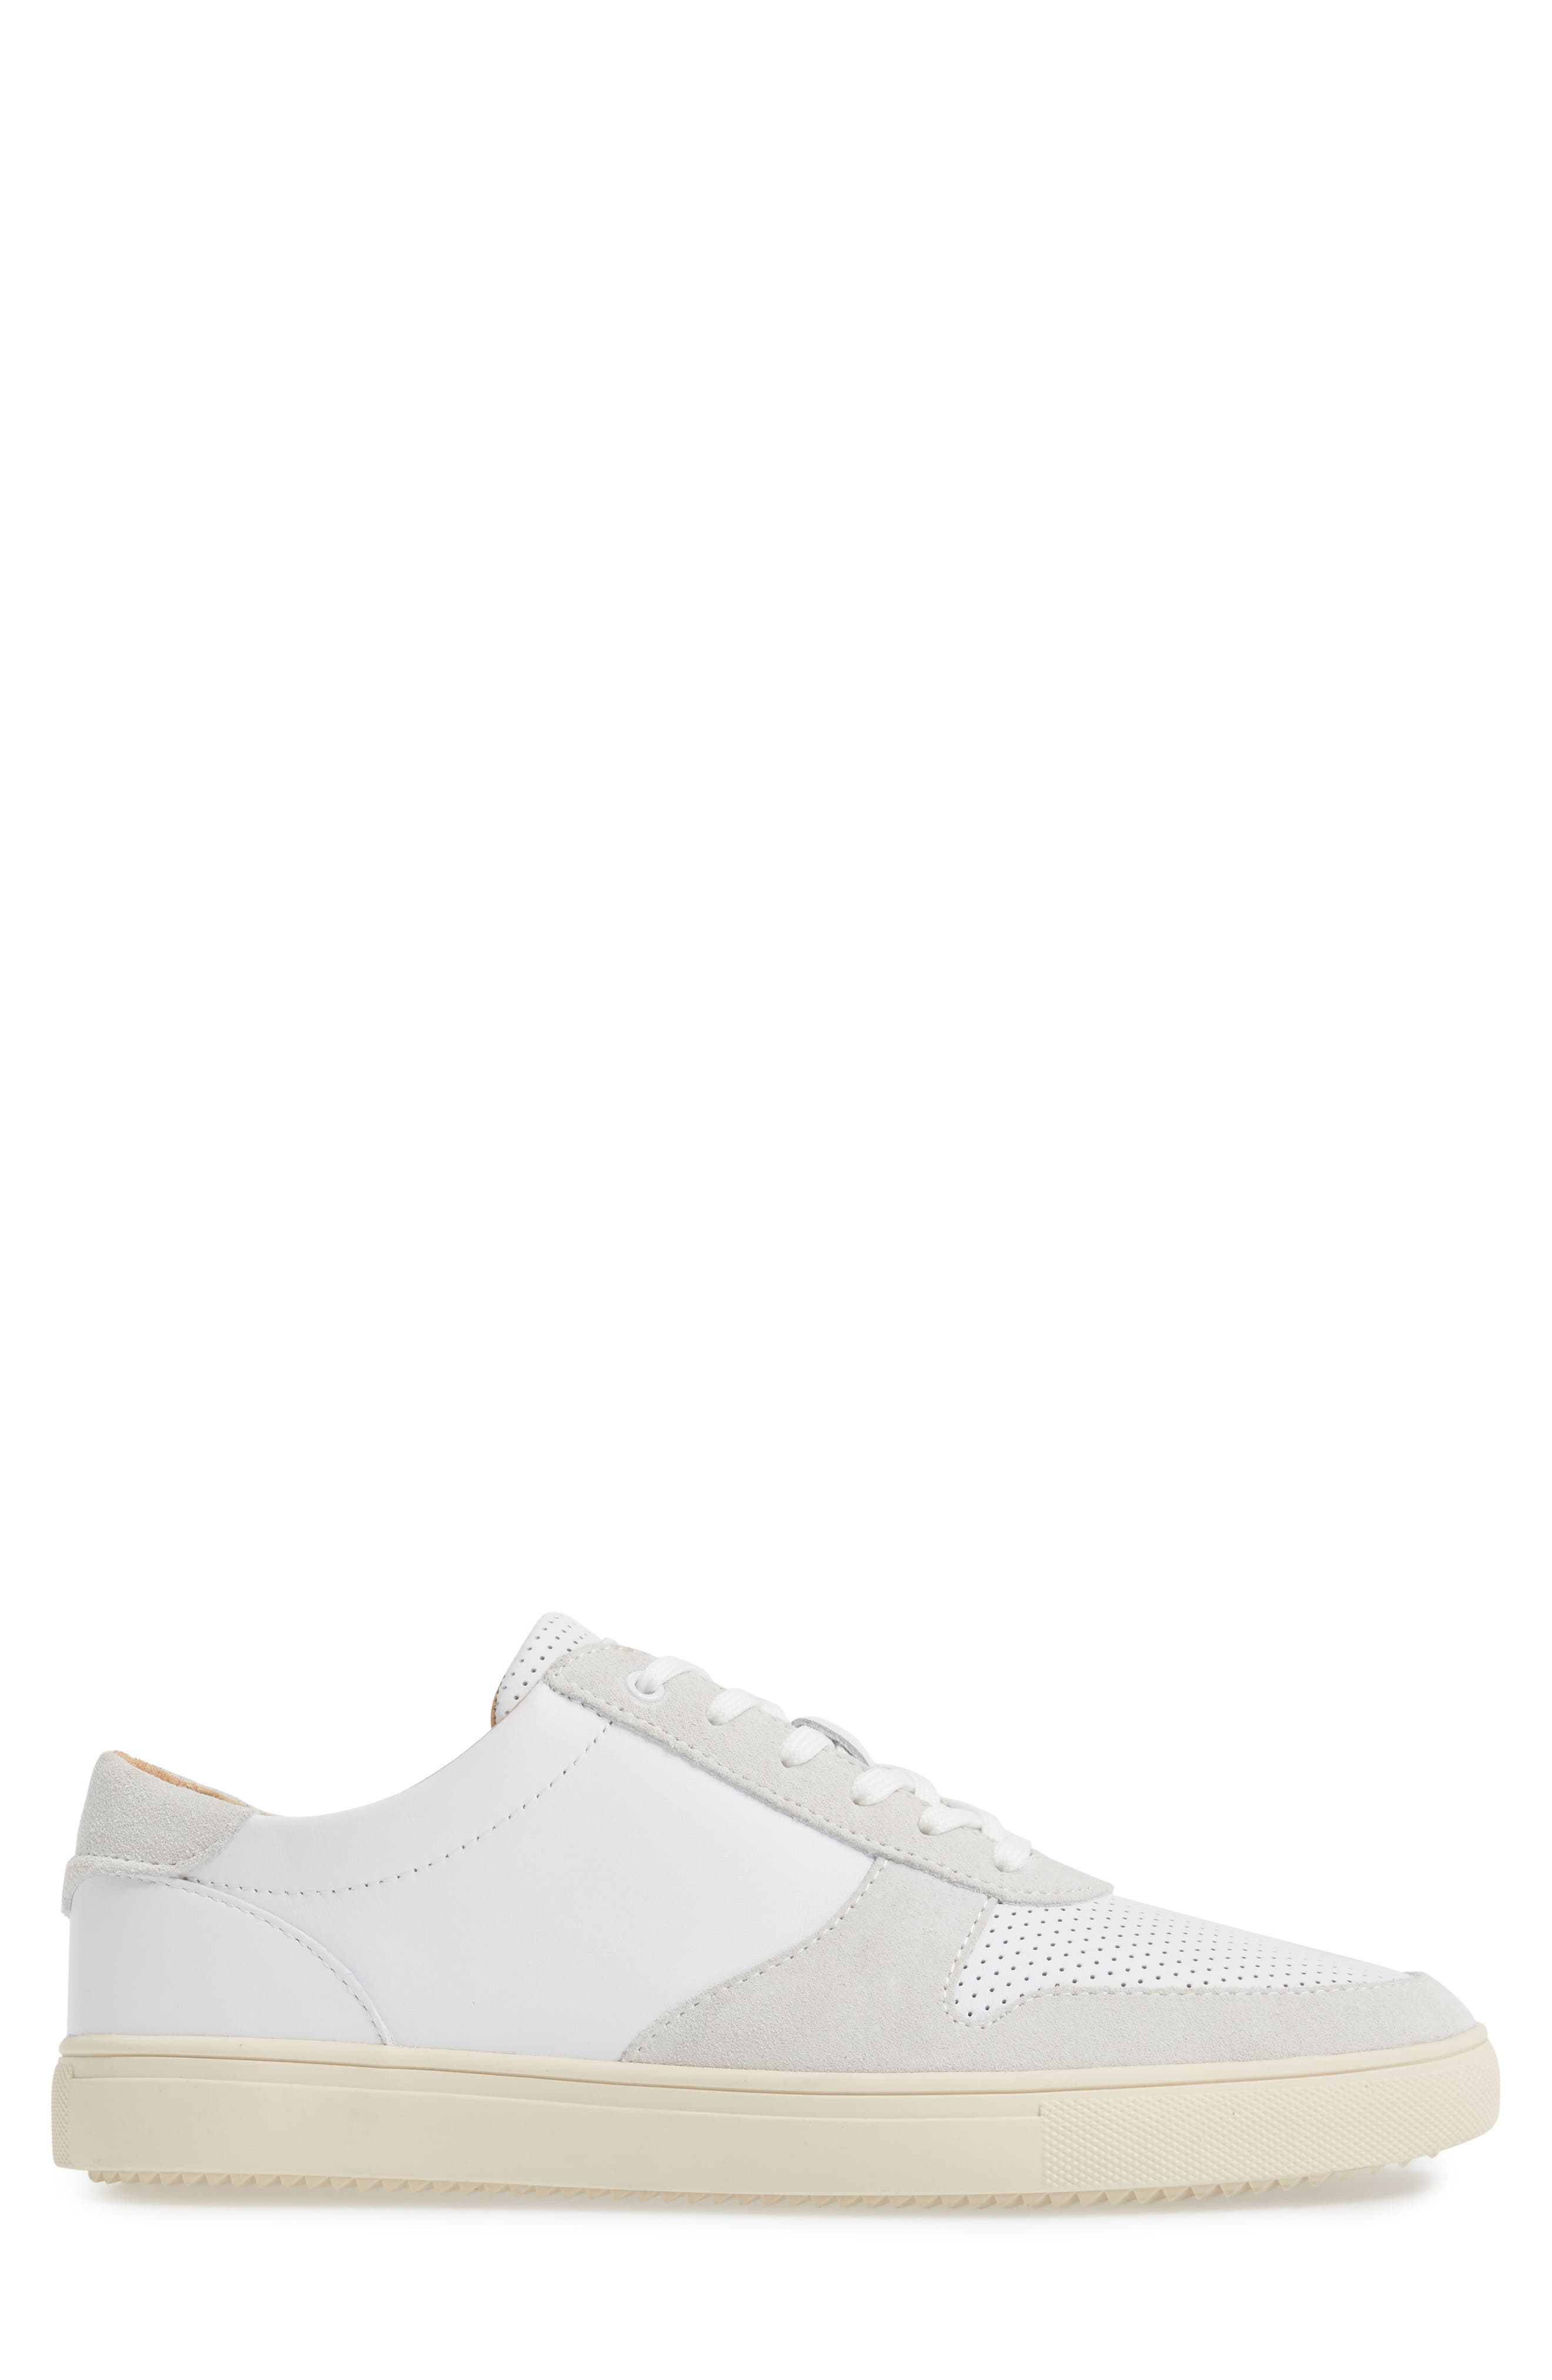 'Gregory' Sneaker,                             Alternate thumbnail 3, color,                             White Leather